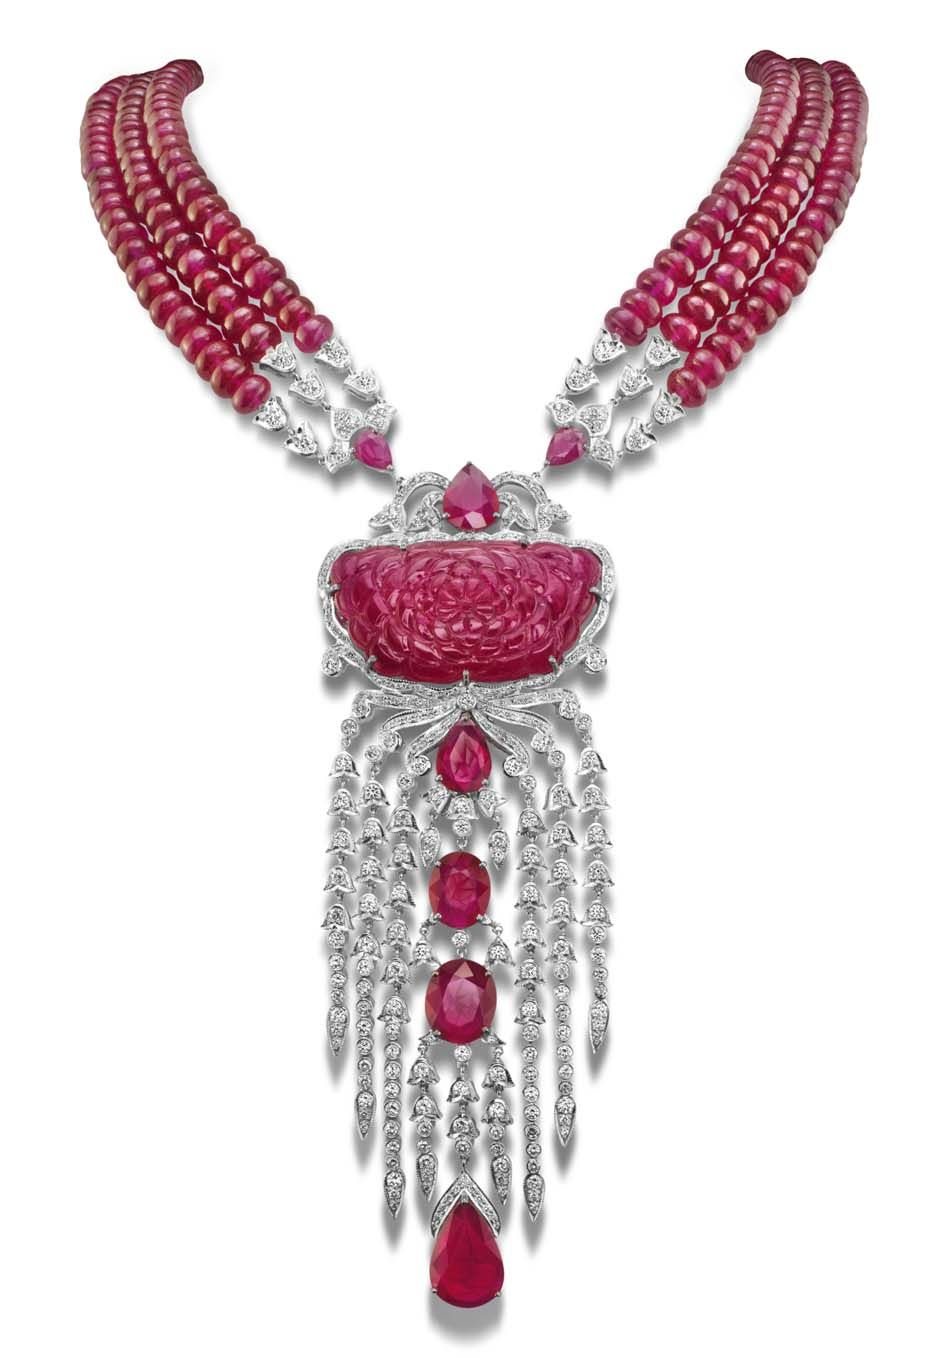 Best of ruby jewellery and watches rose necklace white gold